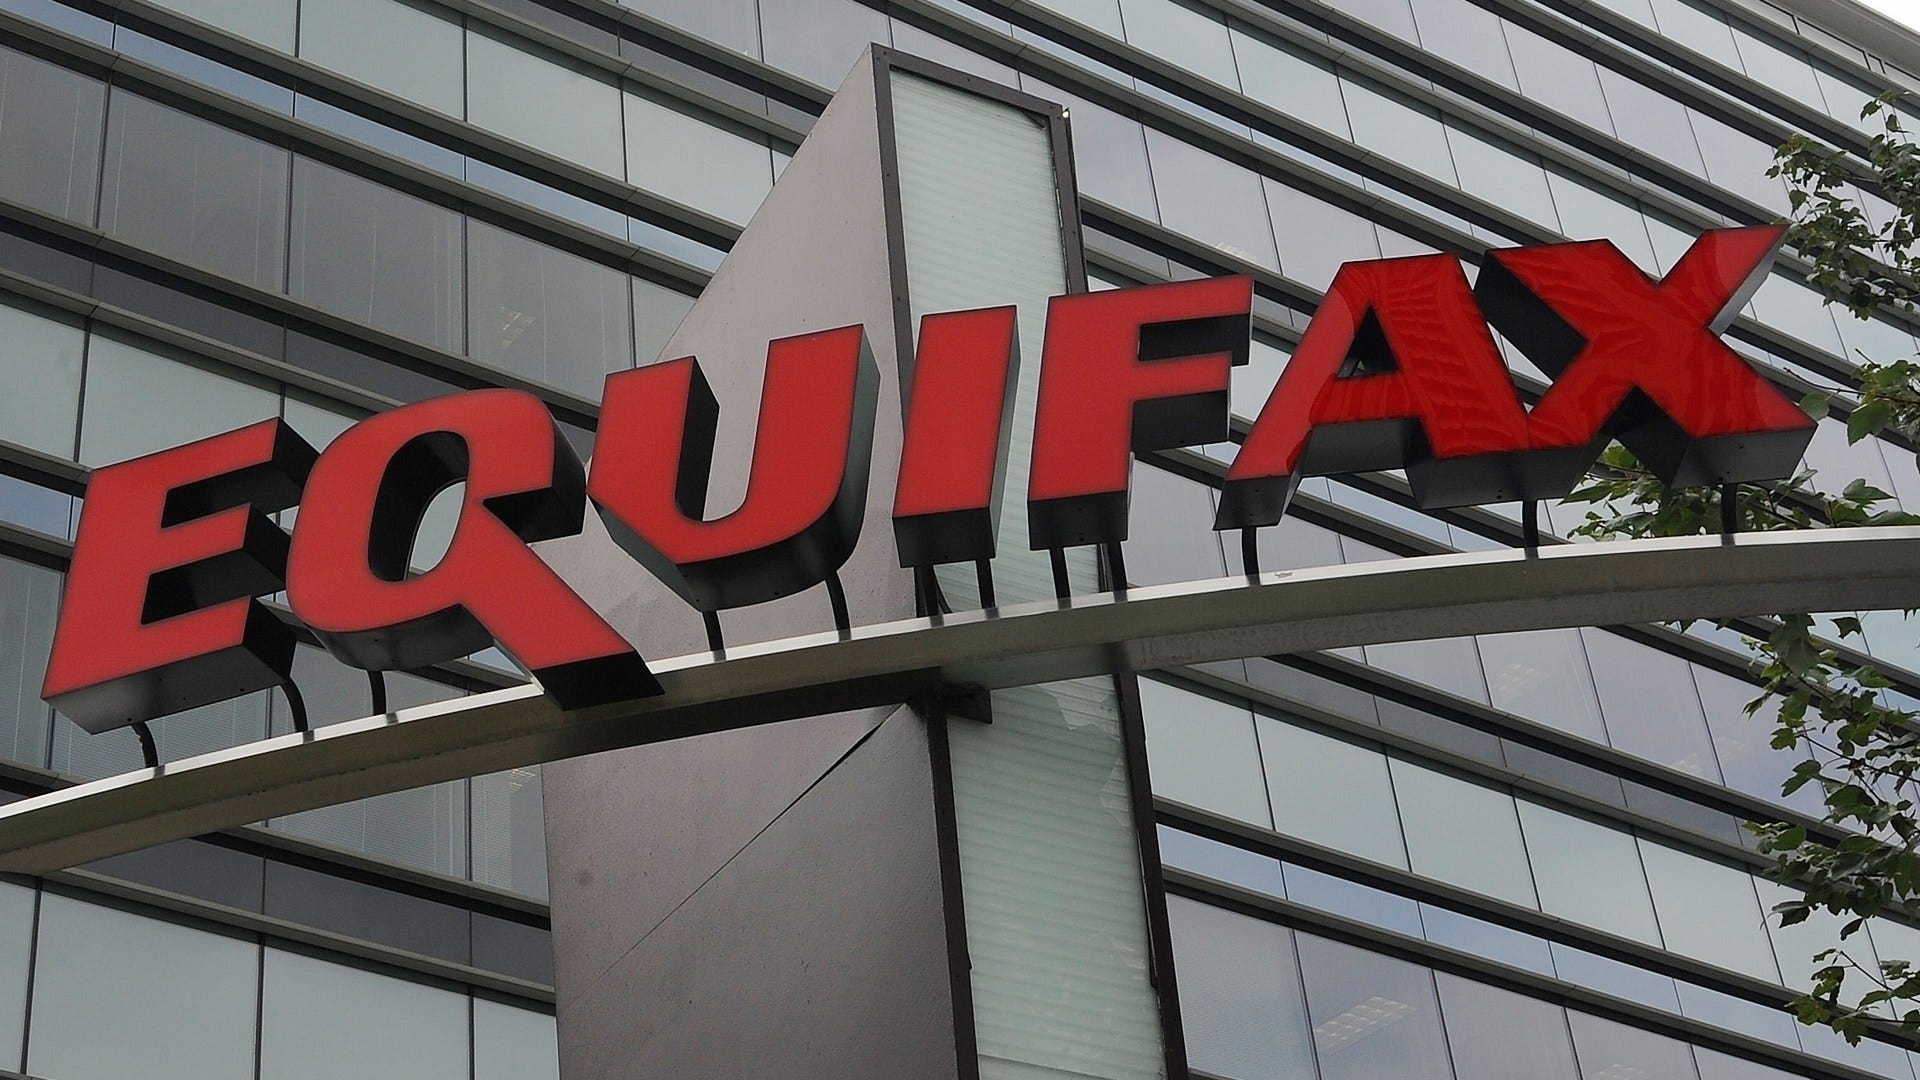 Equifax: 2.5 Million More Americans May Be Affected By Hack